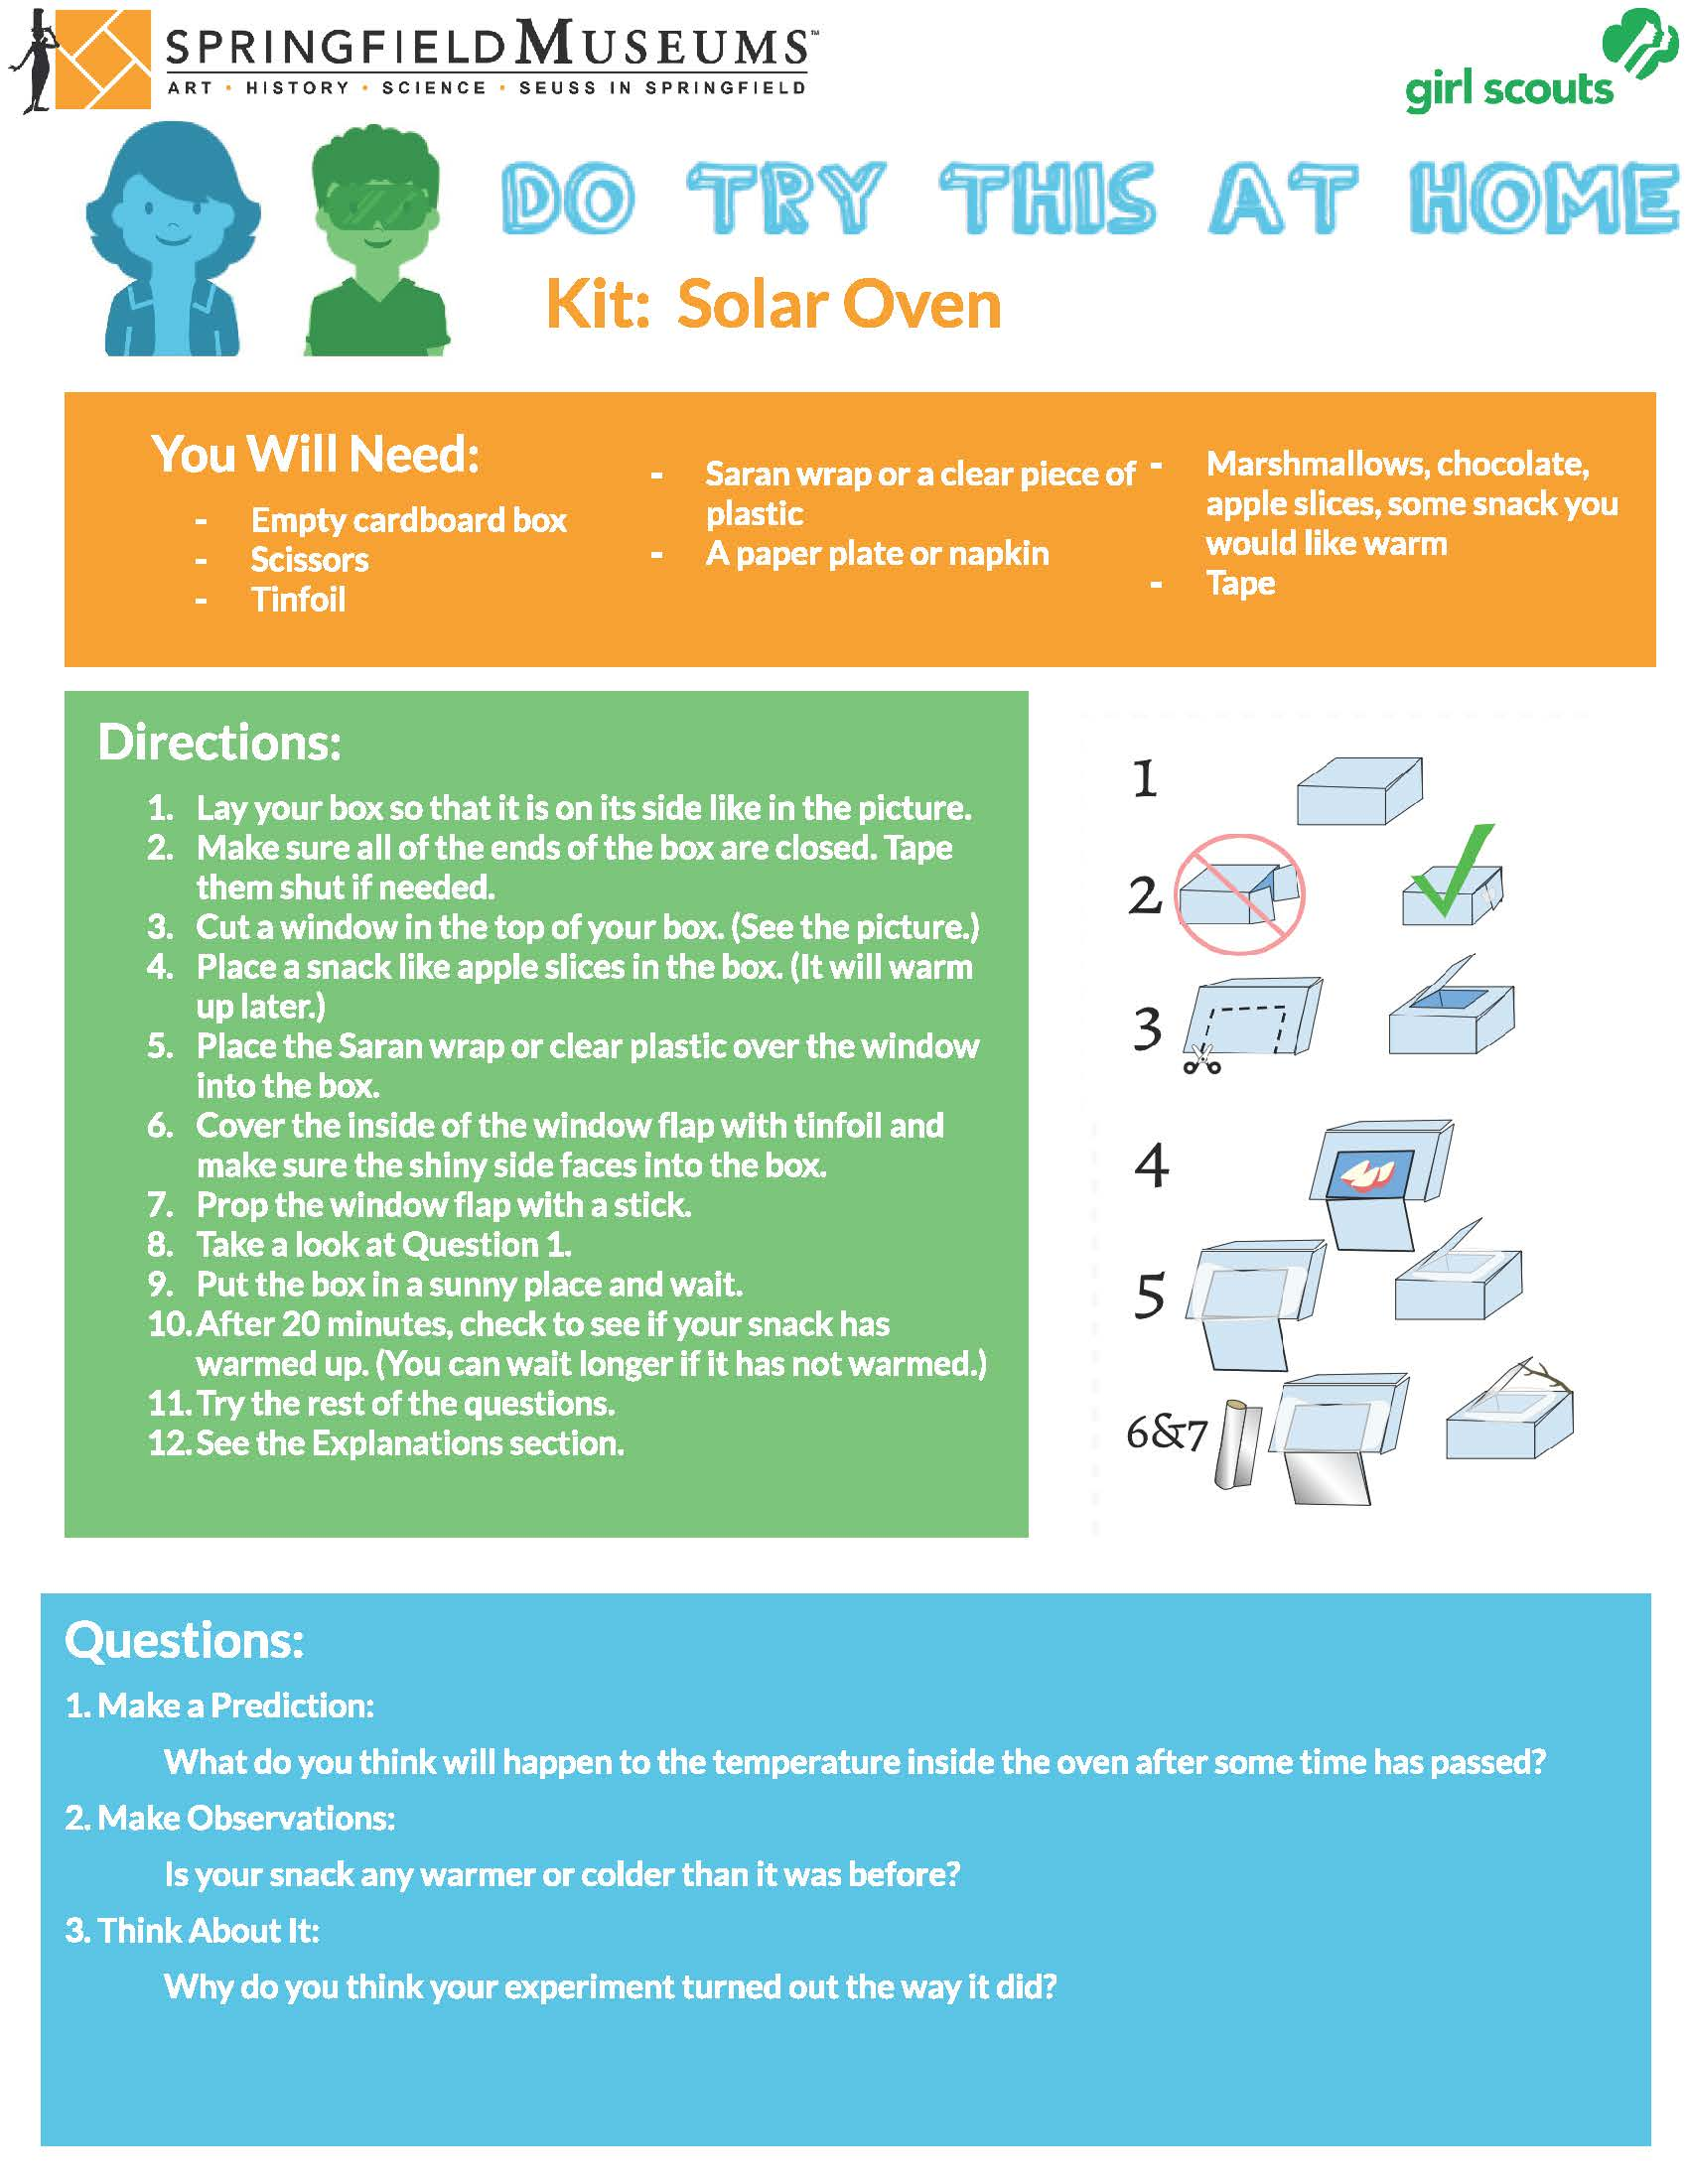 Do Try This At Home Kit: Solar Oven